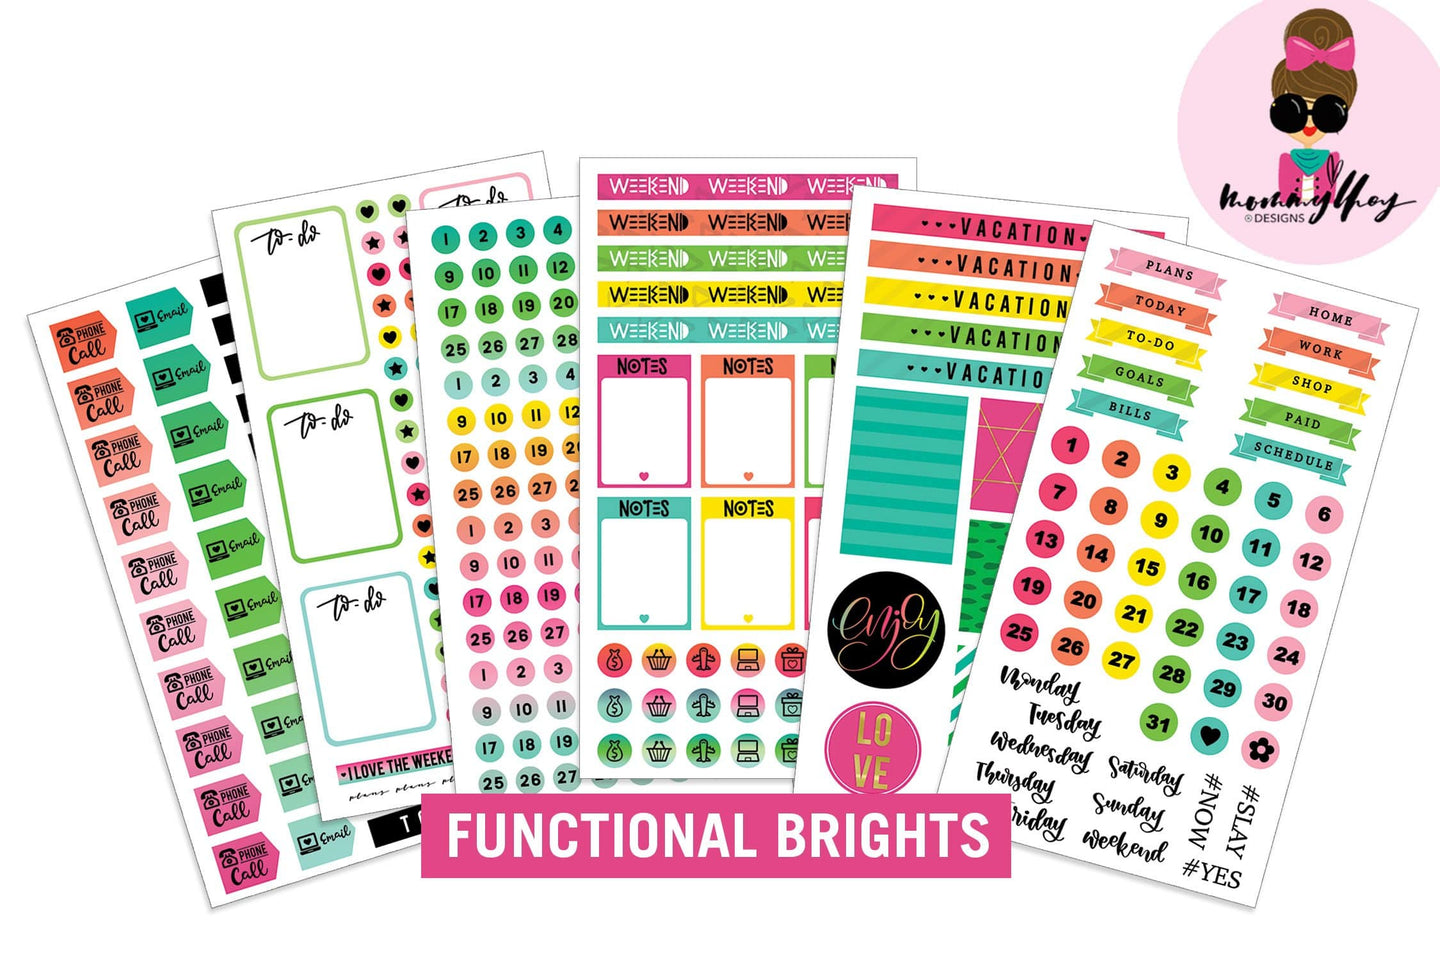 Mommy Lhey- Functional Brights Sticker Kit